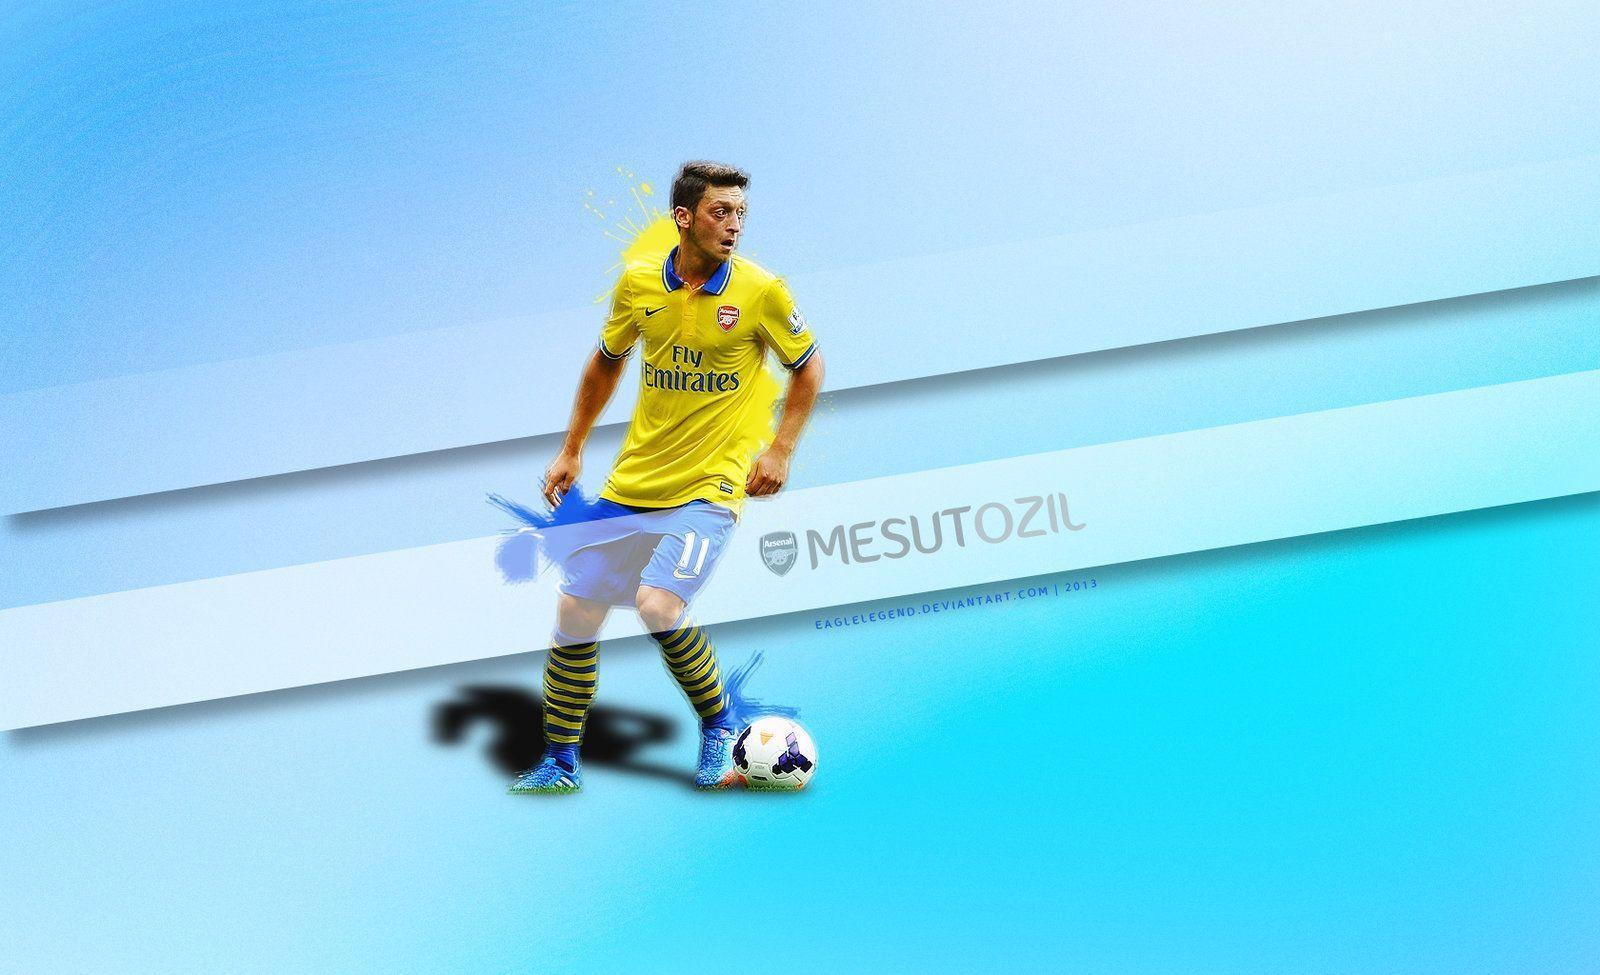 DeviantArt: More Like Mesut Ozil Wallpapers by eaglelegend